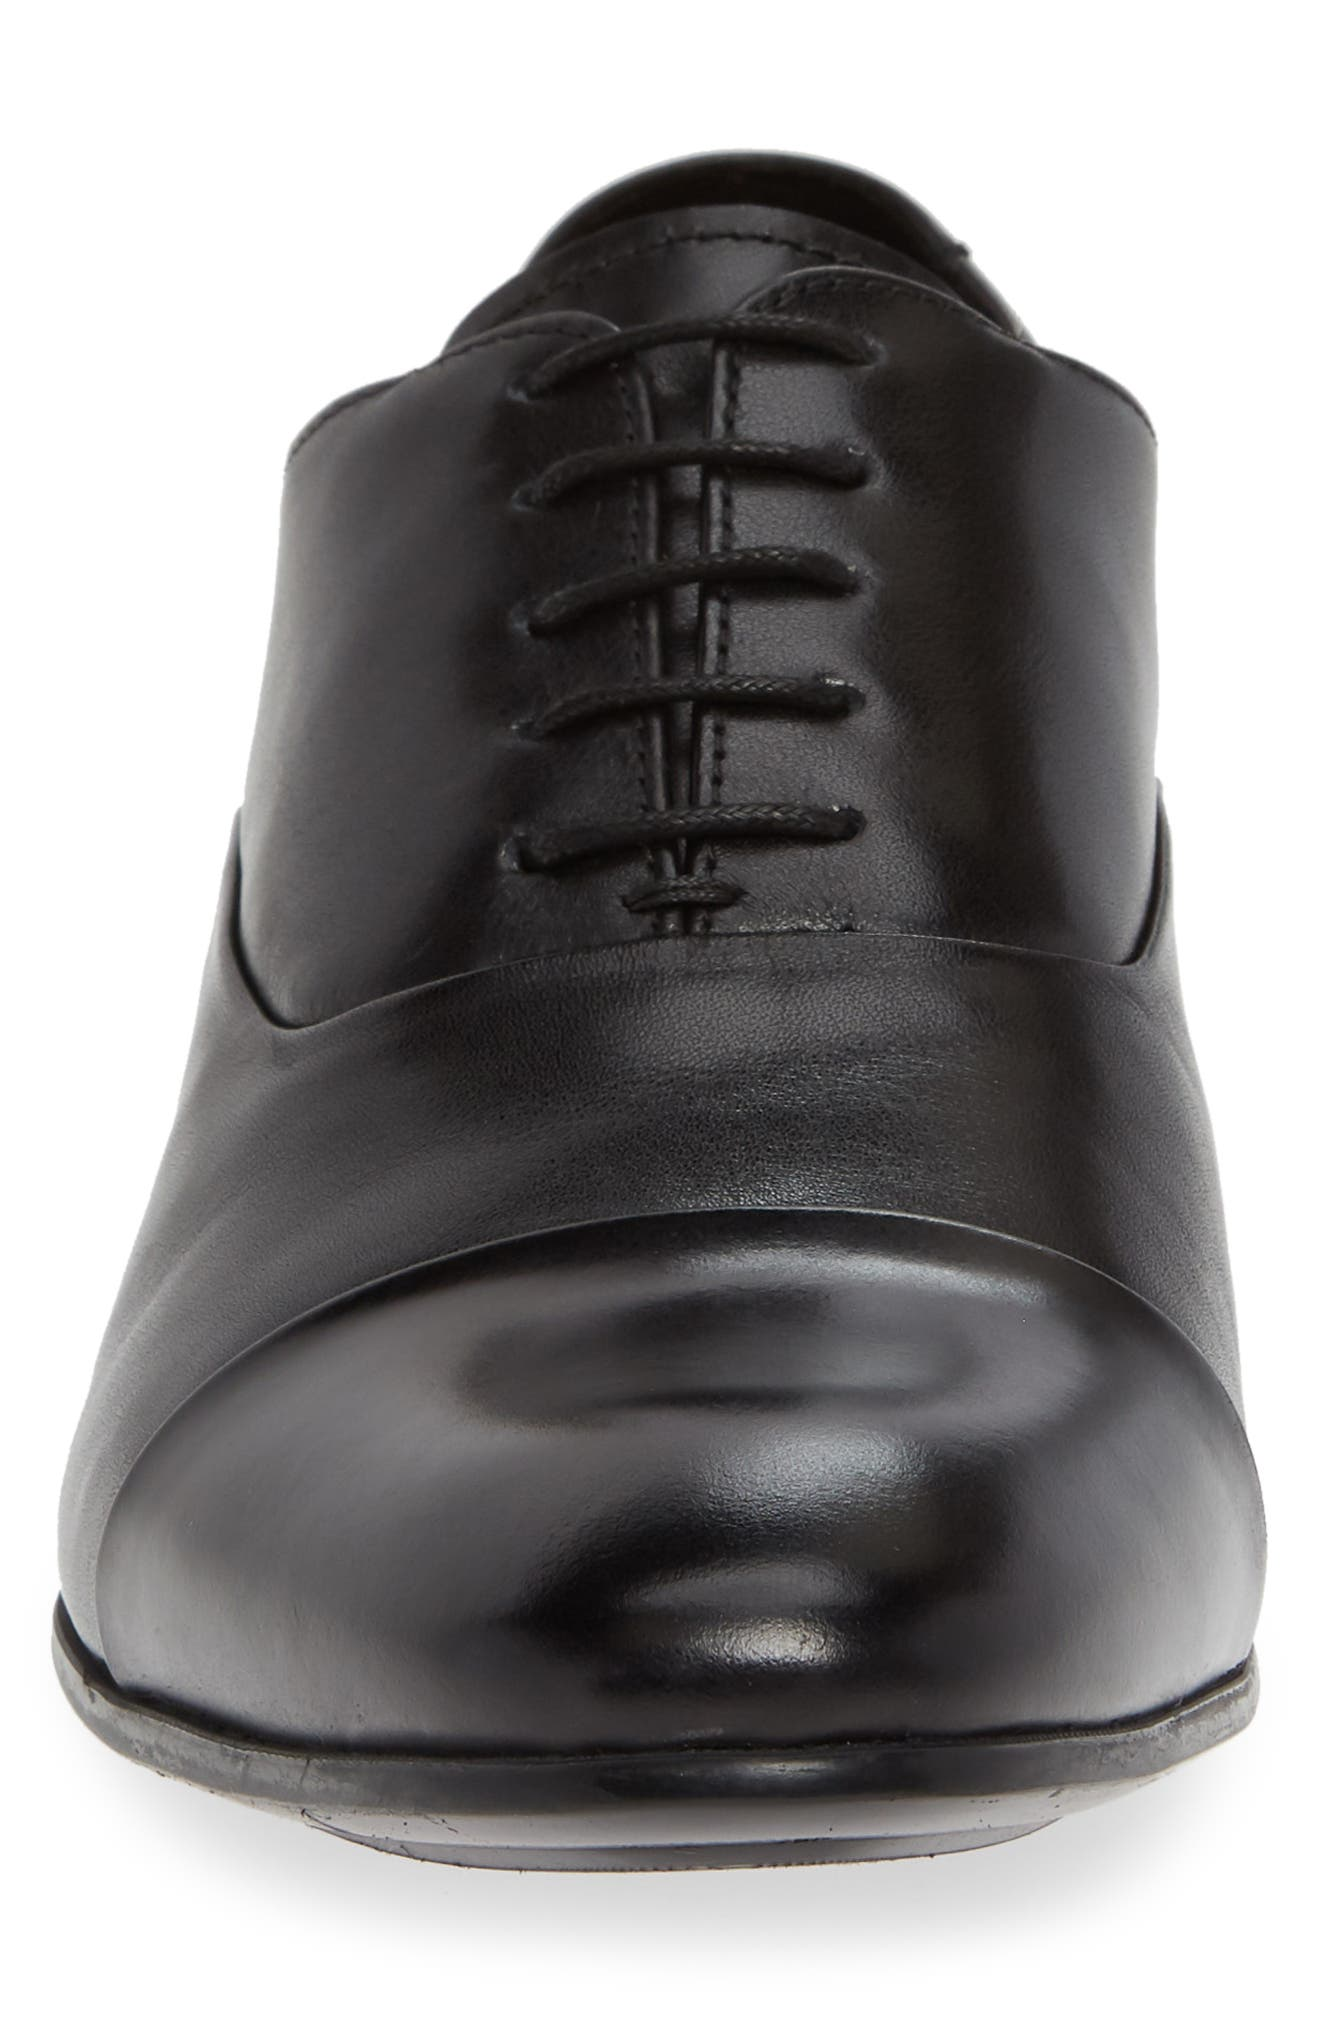 KENNETH COLE NEW YORK,                             Mix Cap Toe Oxford,                             Alternate thumbnail 4, color,                             008